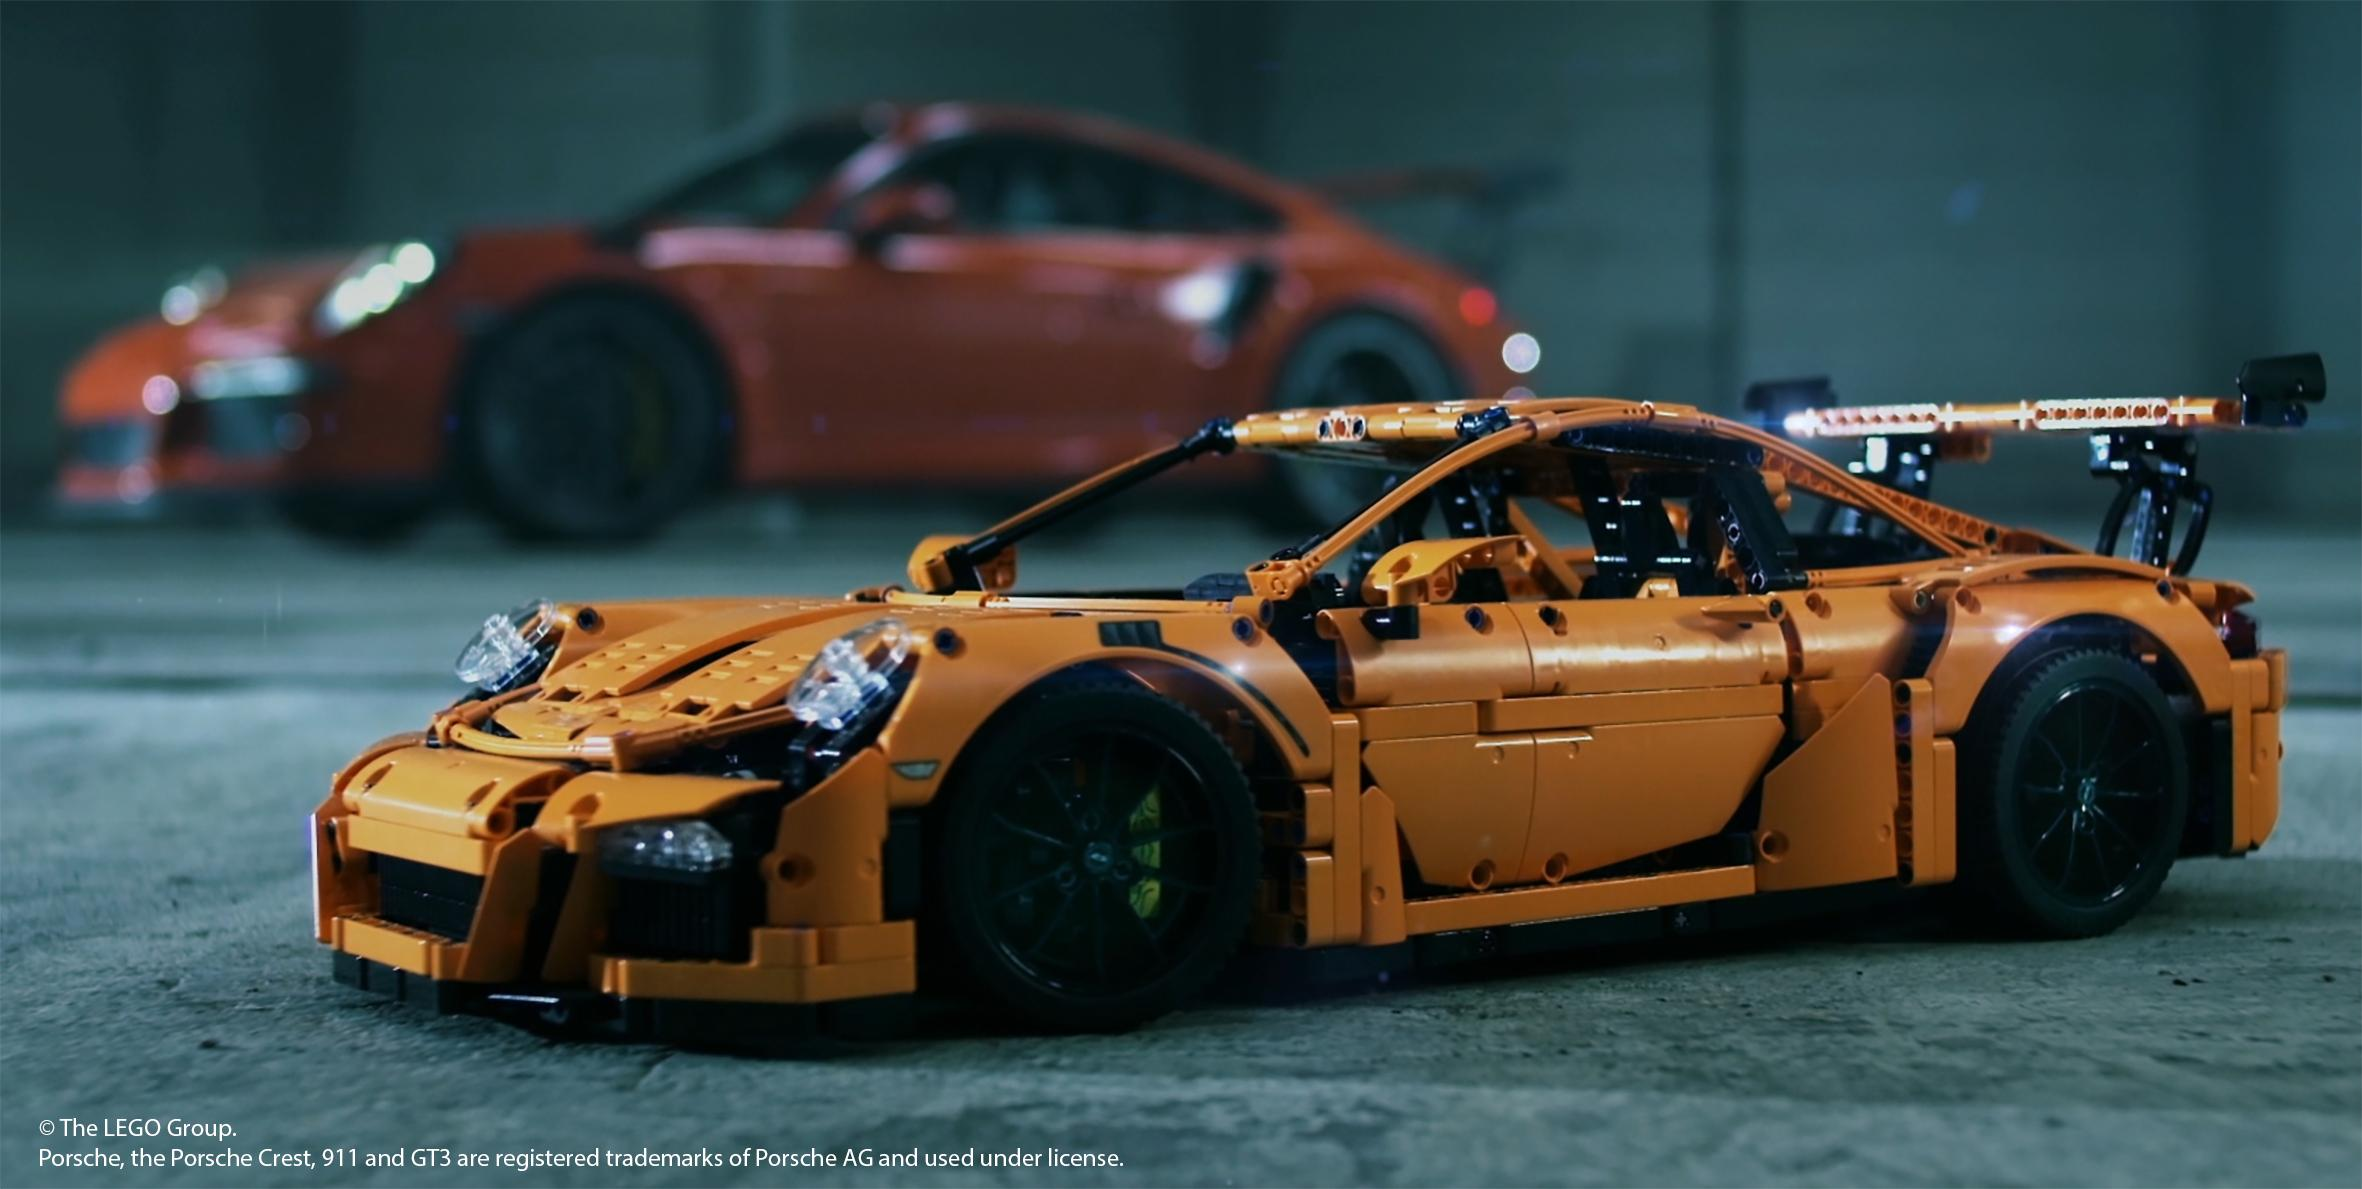 lego technic porsche 911 gt3 rs 42056 model 6 x 22 x 9. Black Bedroom Furniture Sets. Home Design Ideas